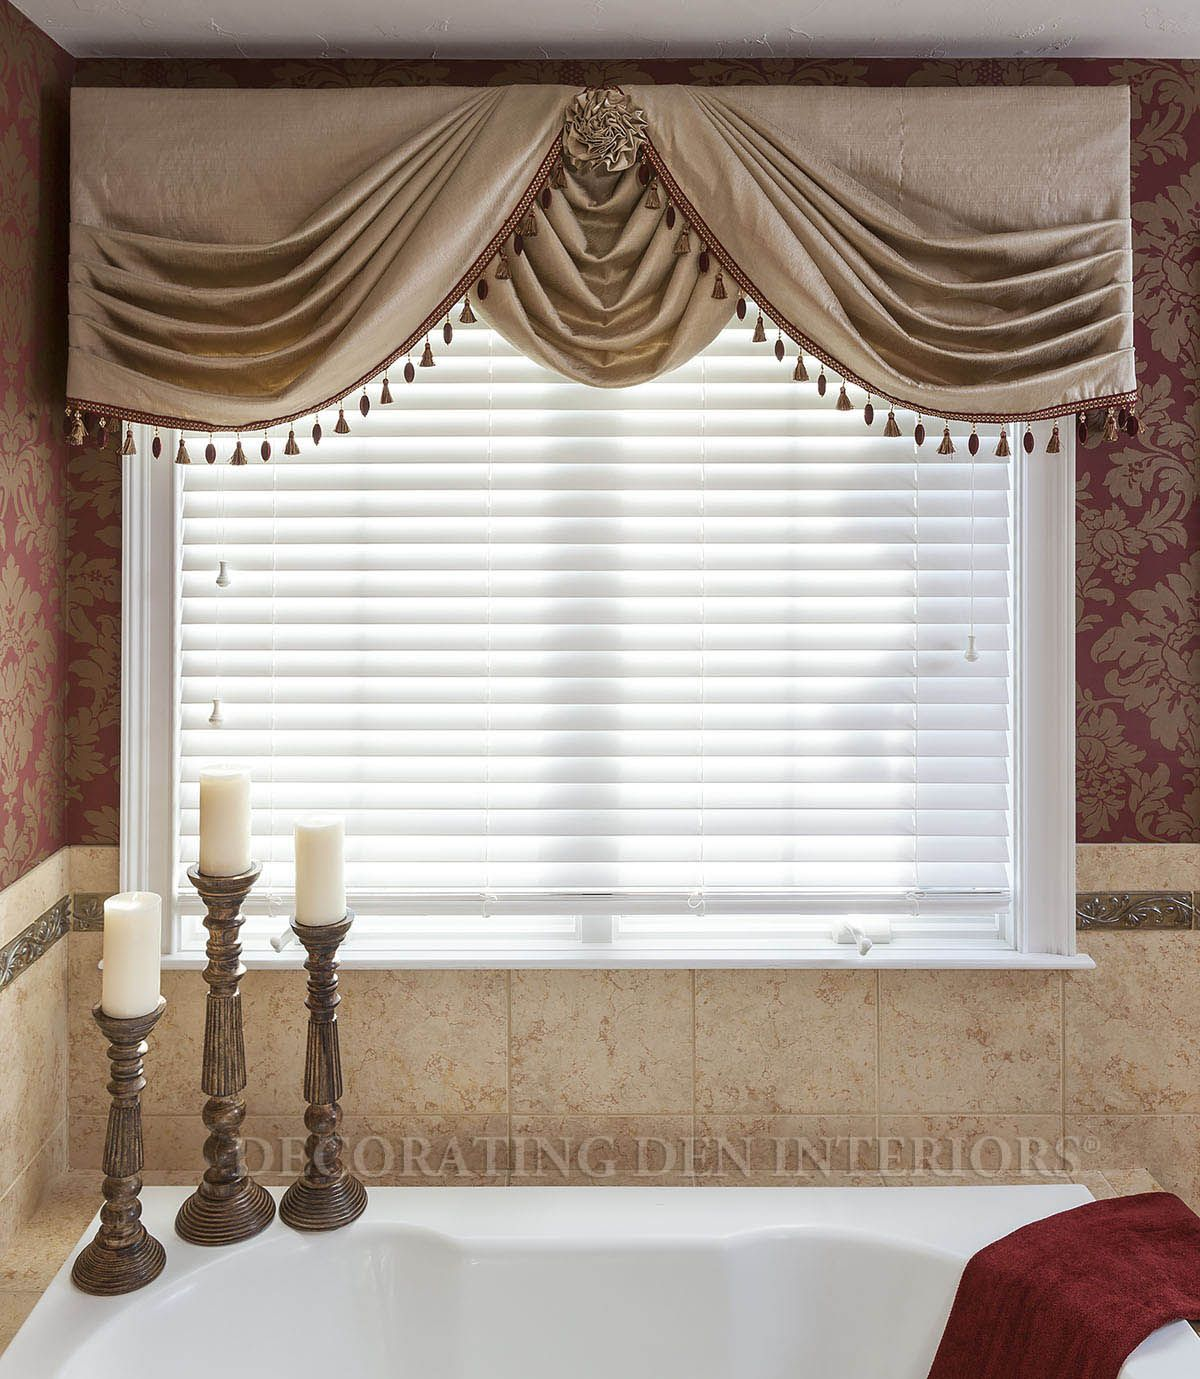 Elegant Bathroom Window Treatments: Side Swags With Center Swag & Choux